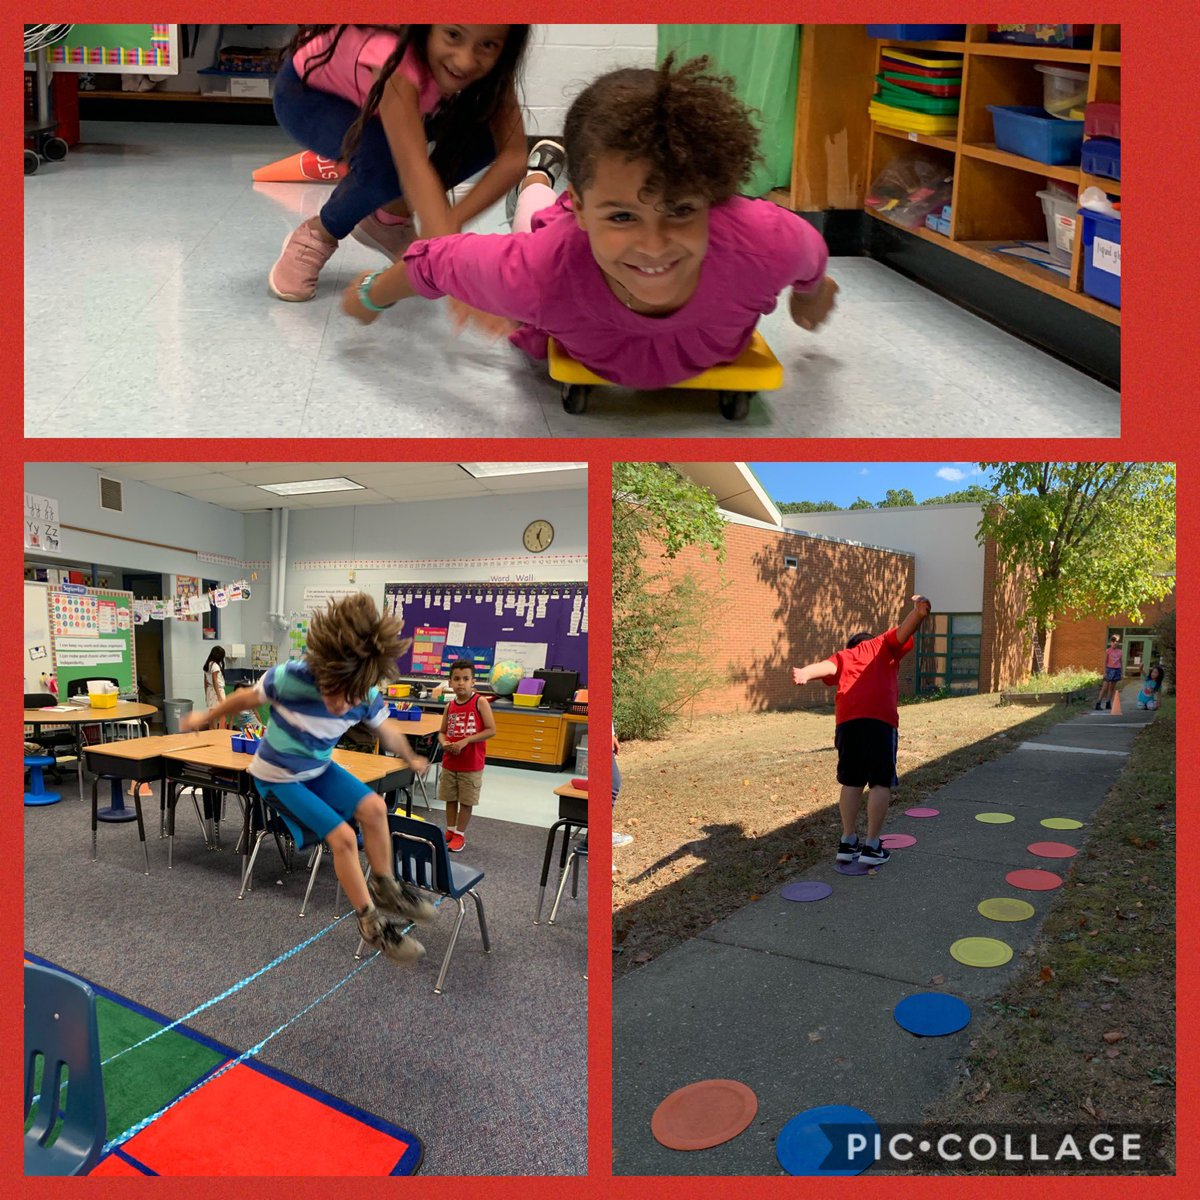 Using our bodies to explore Newton's Three Laws of Motion! <a target='_blank' href='http://twitter.com/CampbellAPS'>@CampbellAPS</a> <a target='_blank' href='https://t.co/VKYFb5GUkV'>https://t.co/VKYFb5GUkV</a>